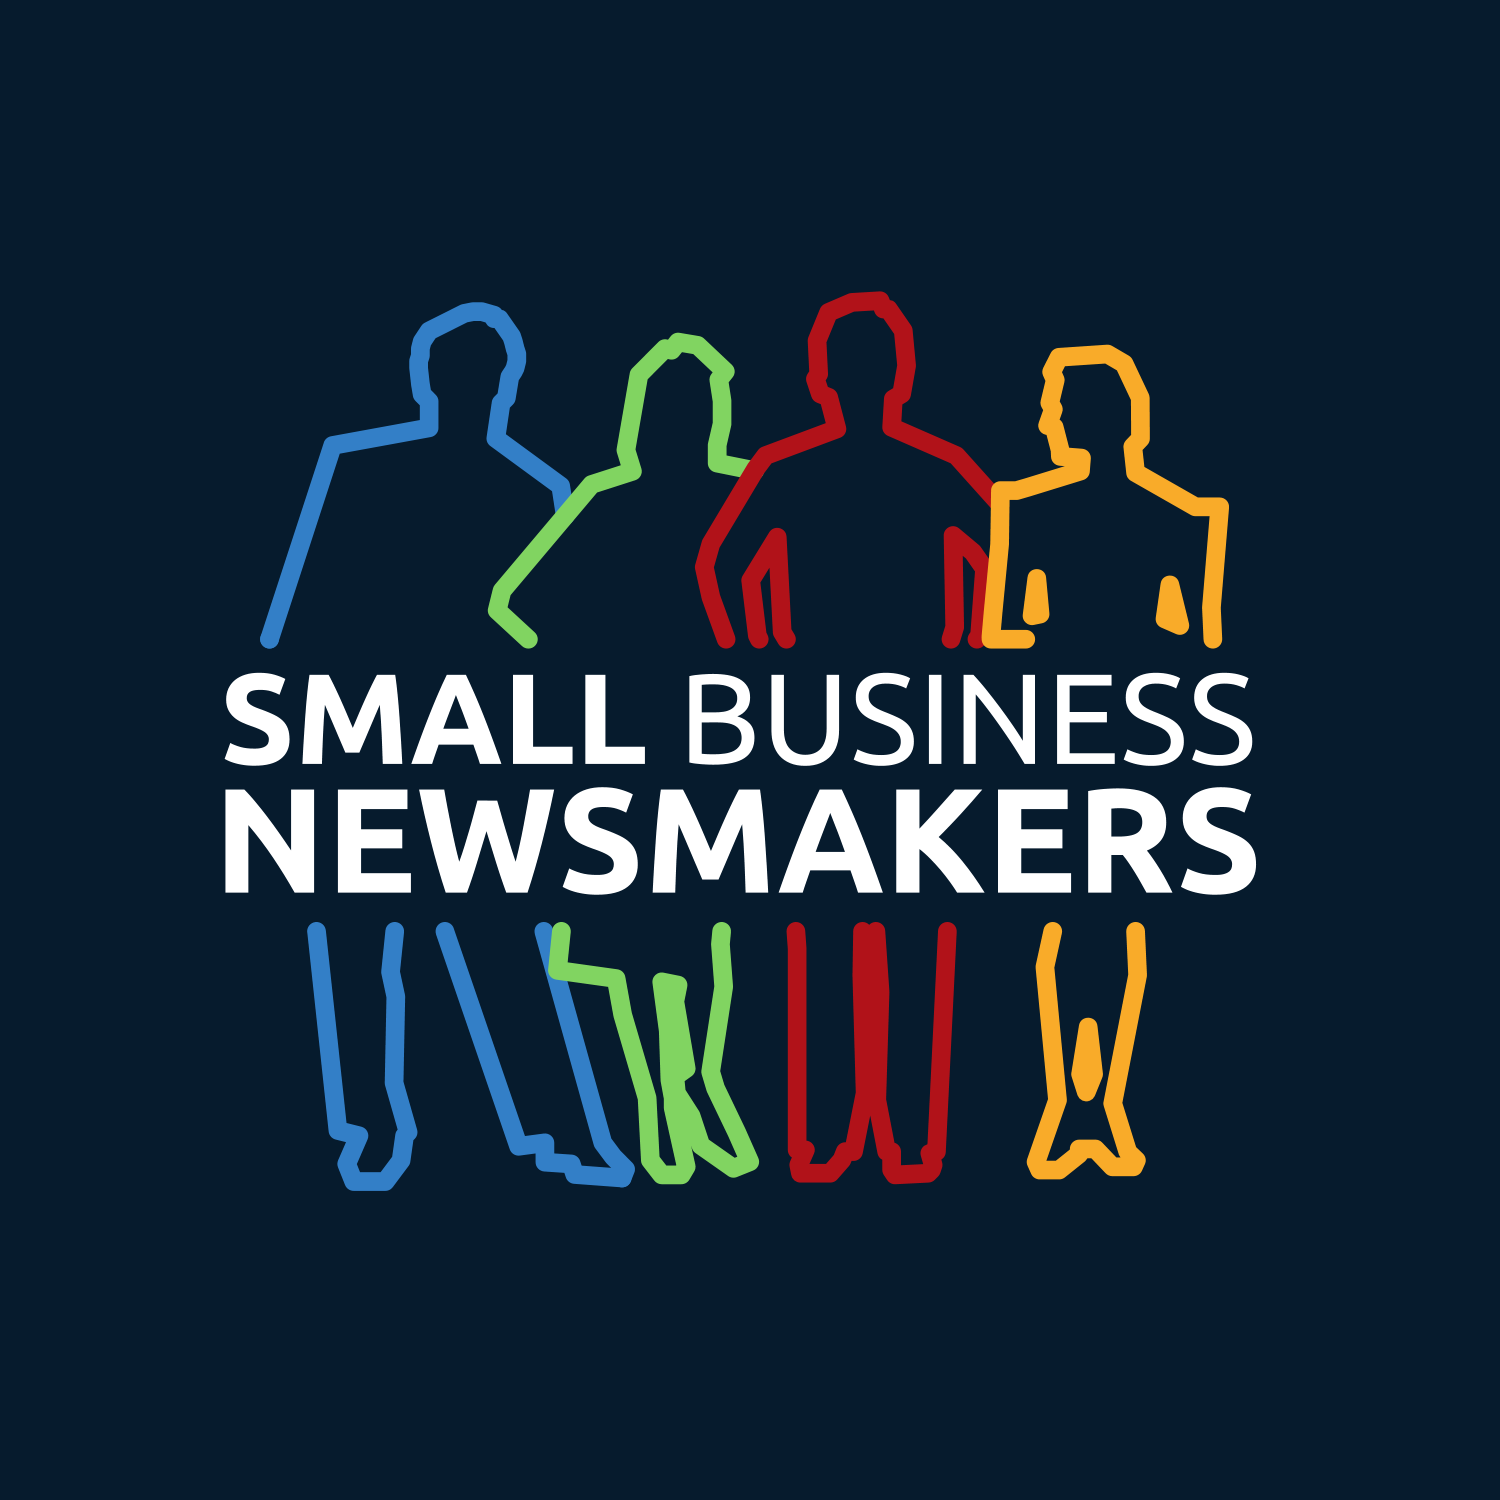 Small Business Newsmakers